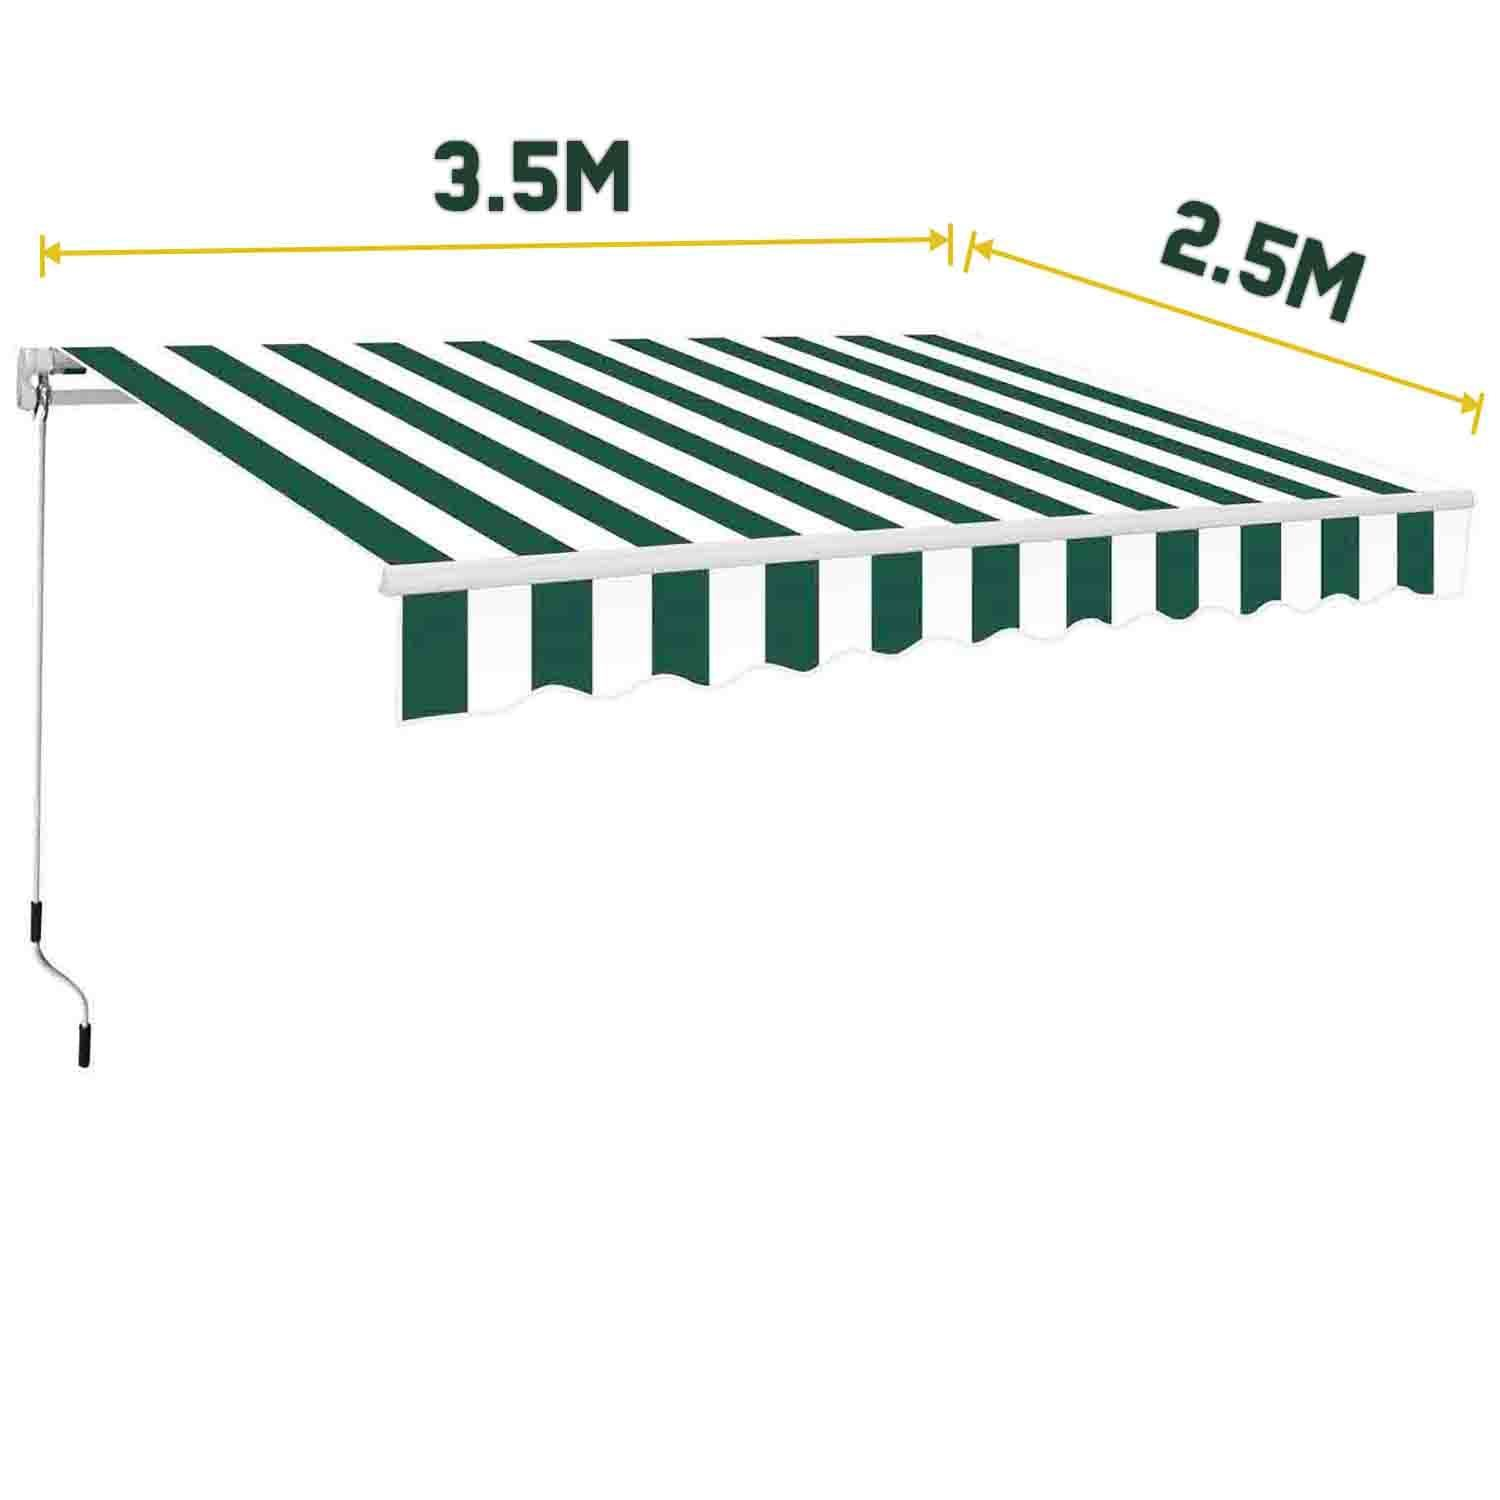 3 5 X 2 5m Manual Awning Garden Patio Shelter Sun Shade